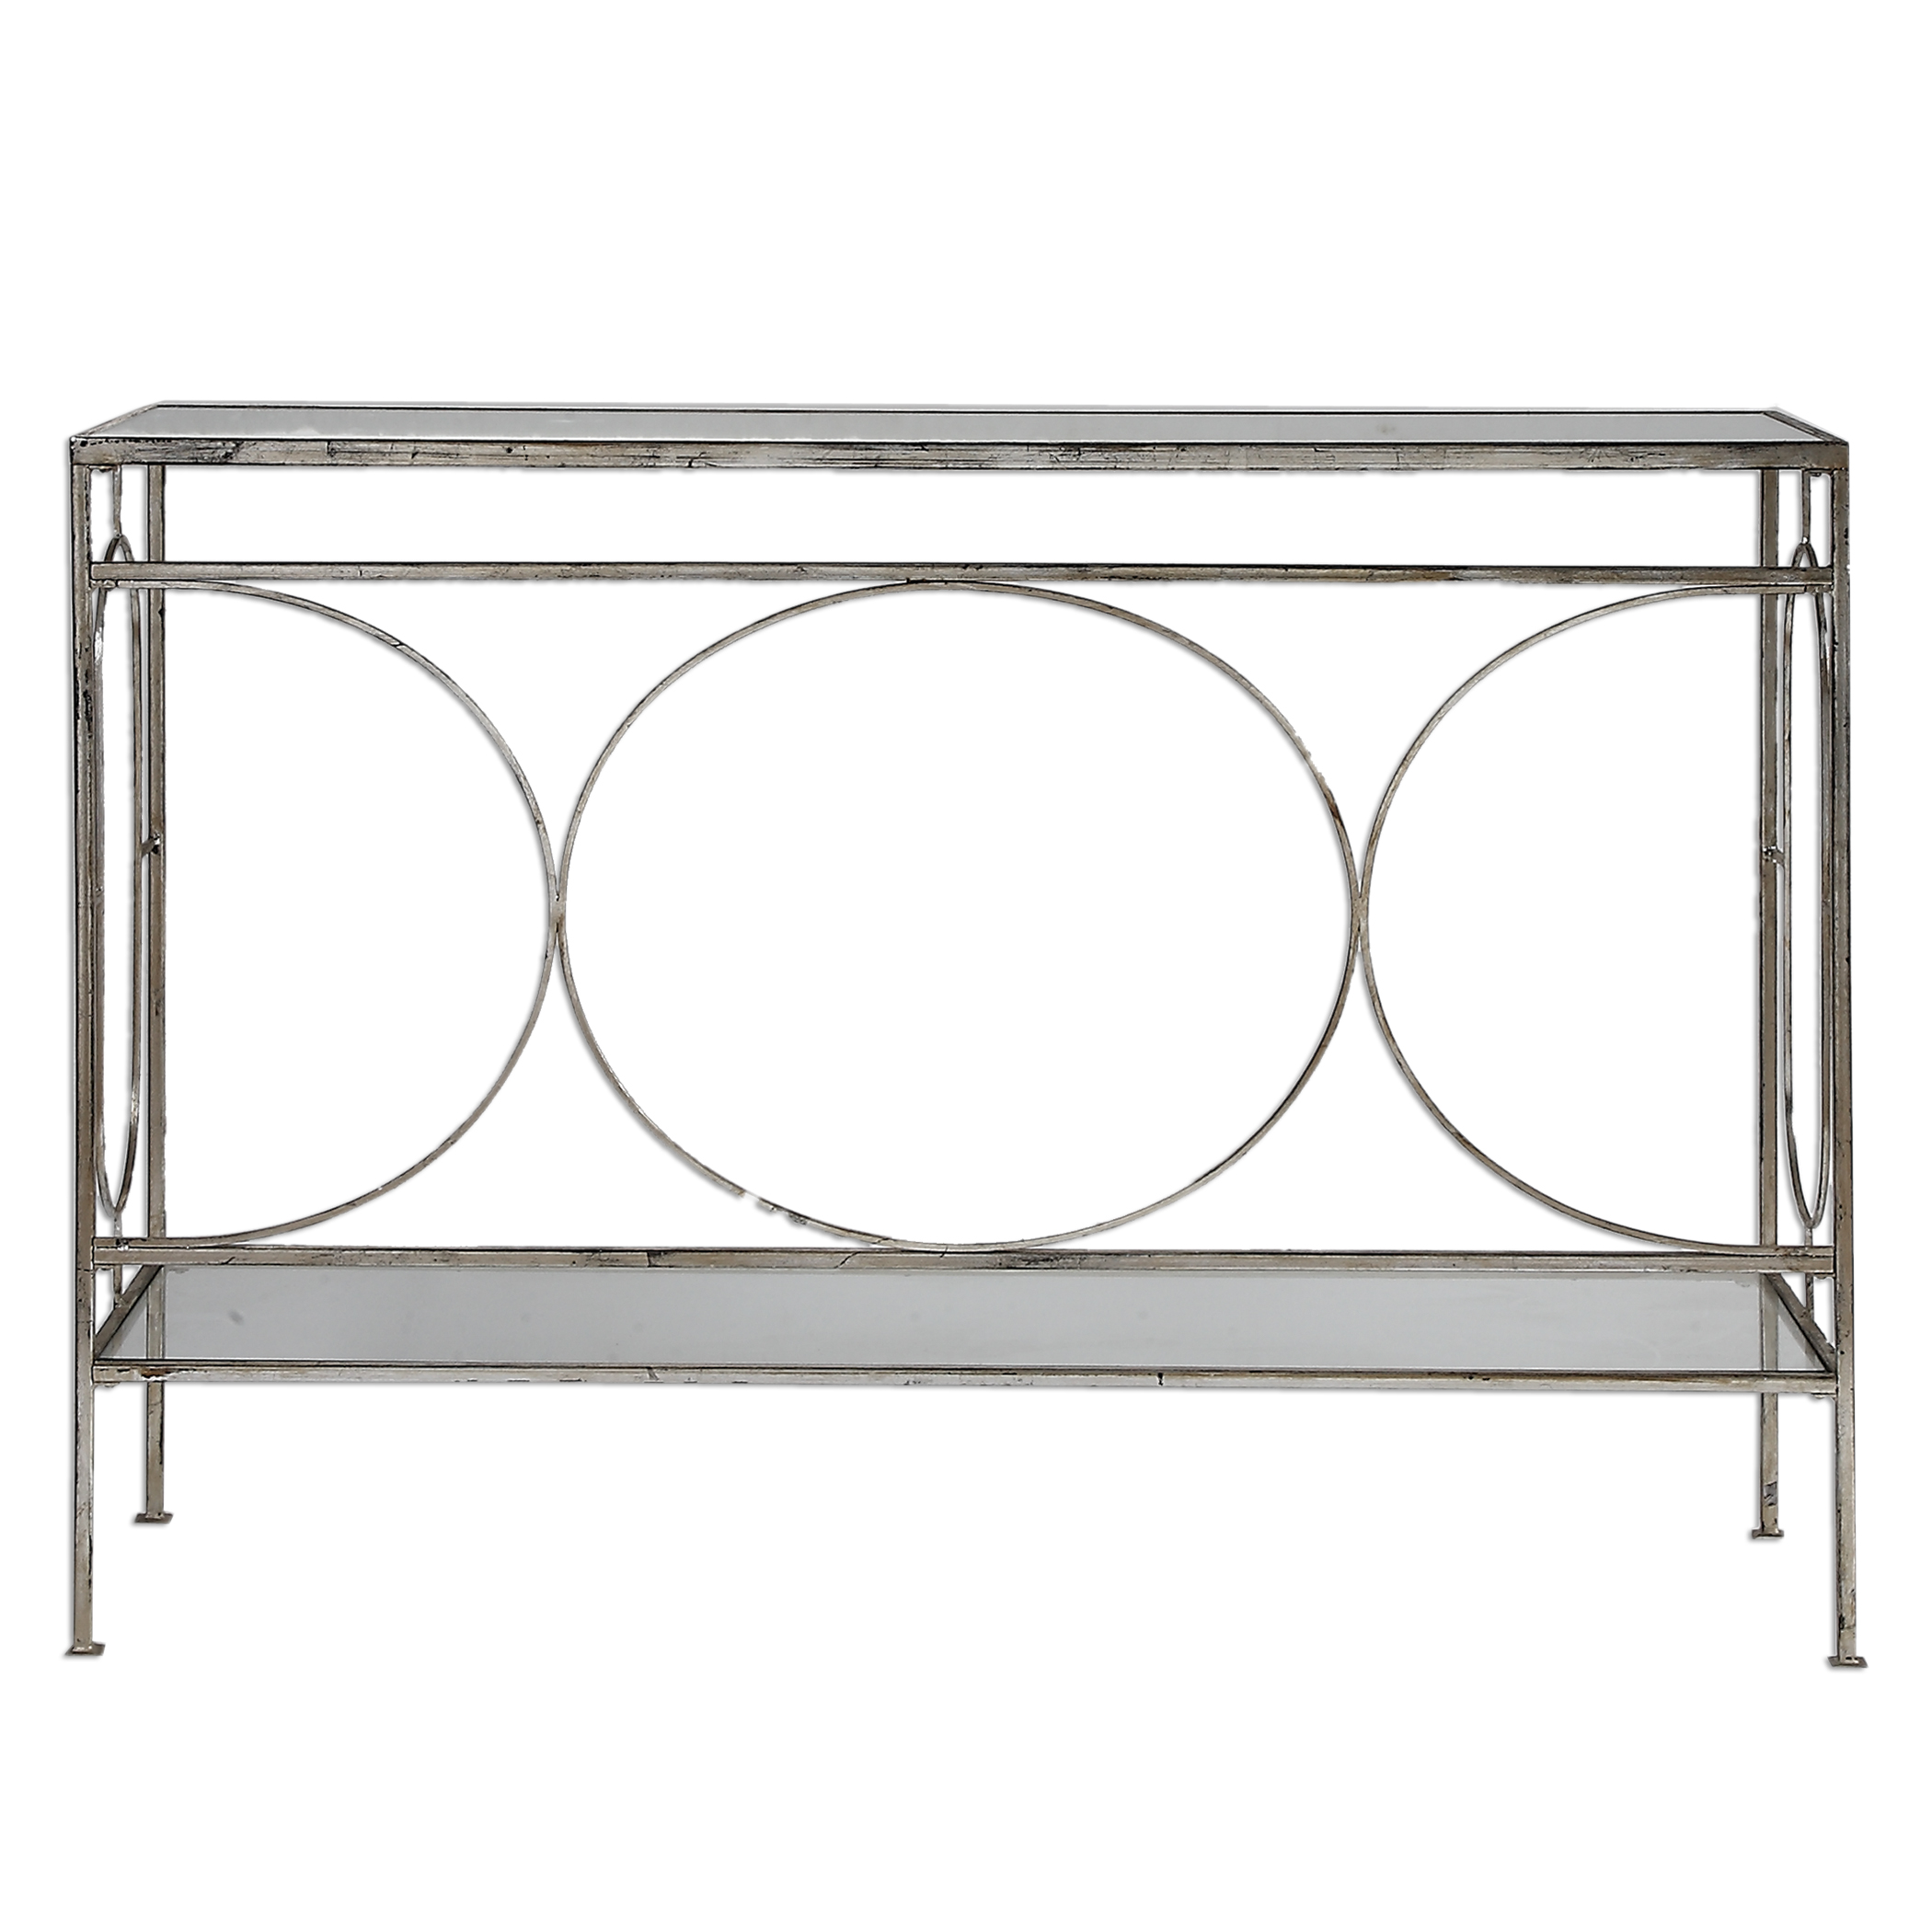 Accent Furniture - Occasional Tables Luano Silver Console Table by Uttermost at O'Dunk & O'Bright Furniture